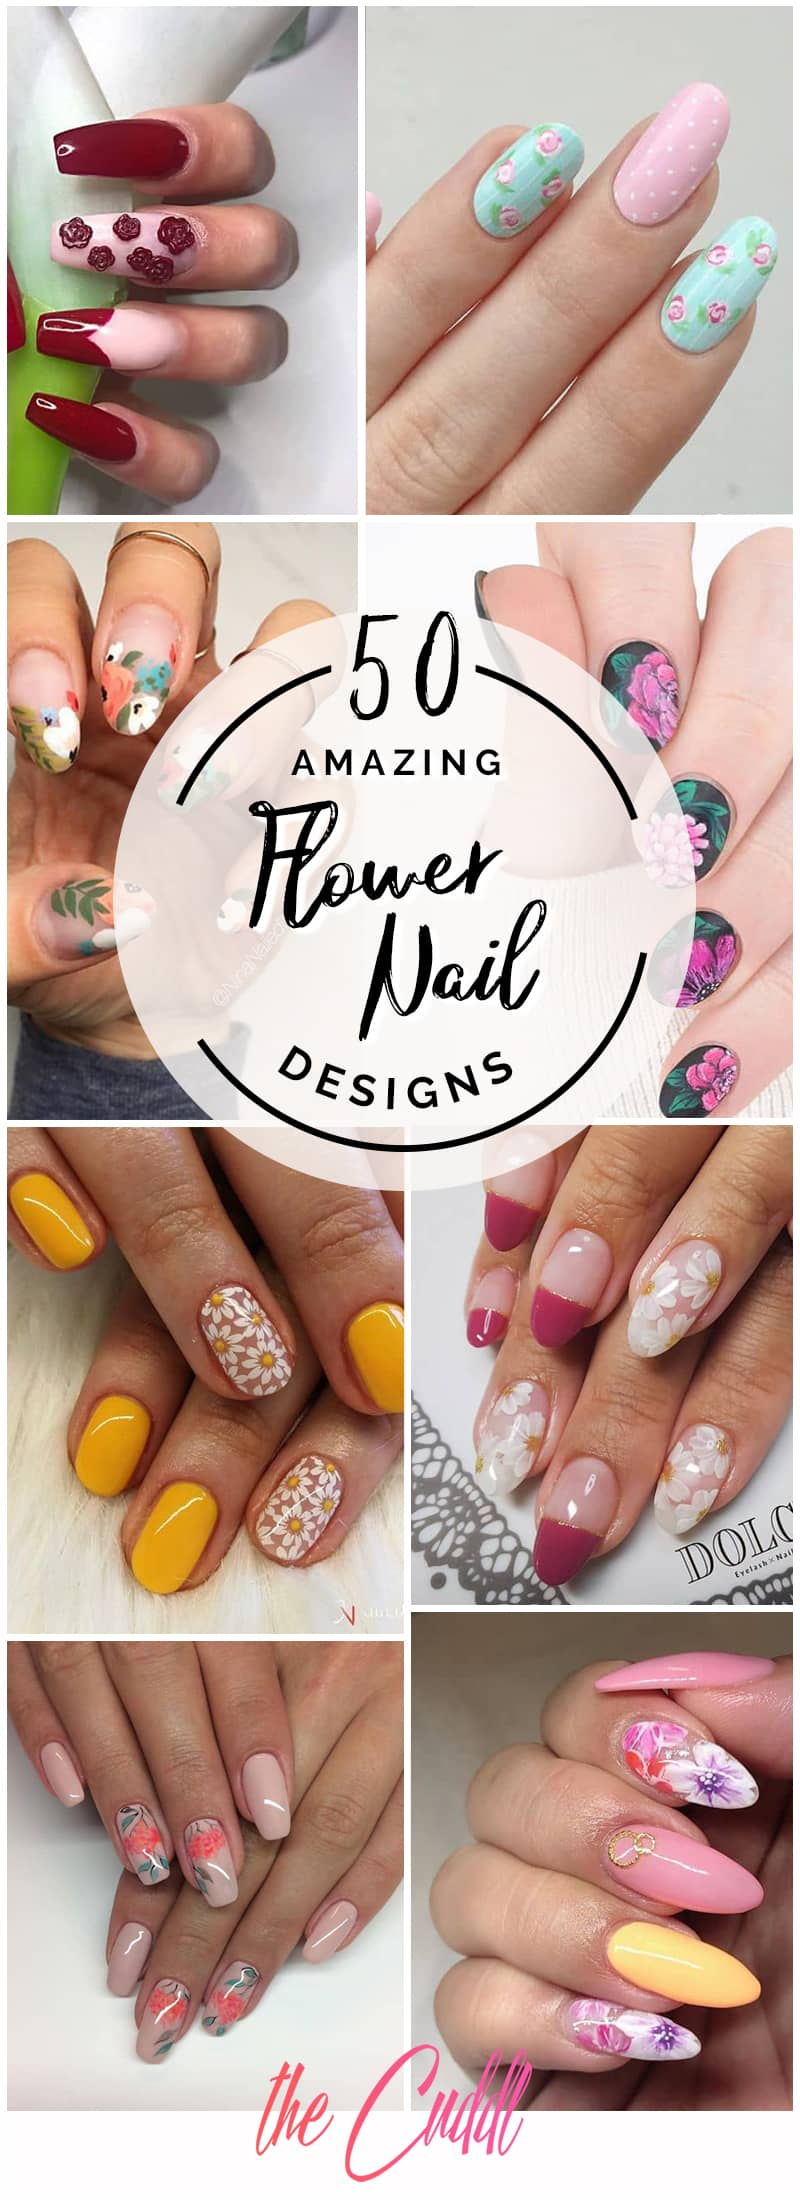 50 Cool Flower Nail Design Ideas To Spice Up Your Look In 2020